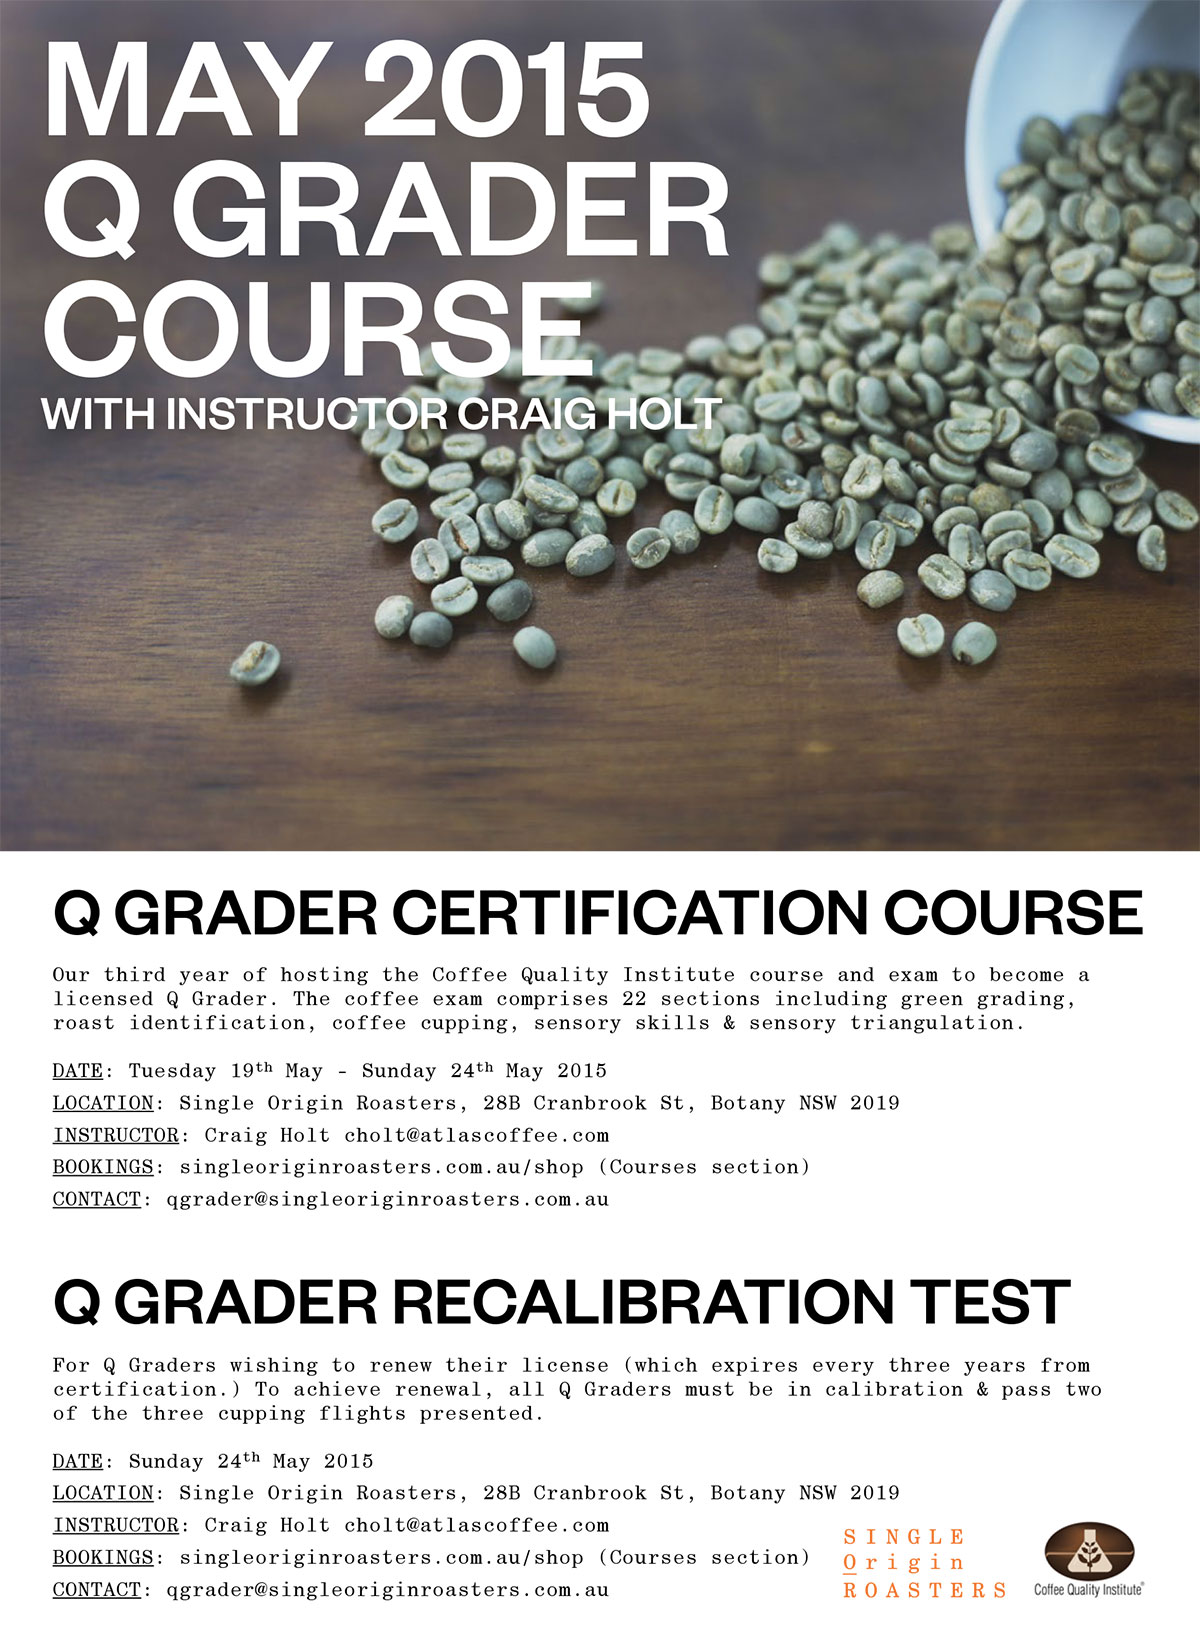 CQI Q Grader course at Single Origin Roasters